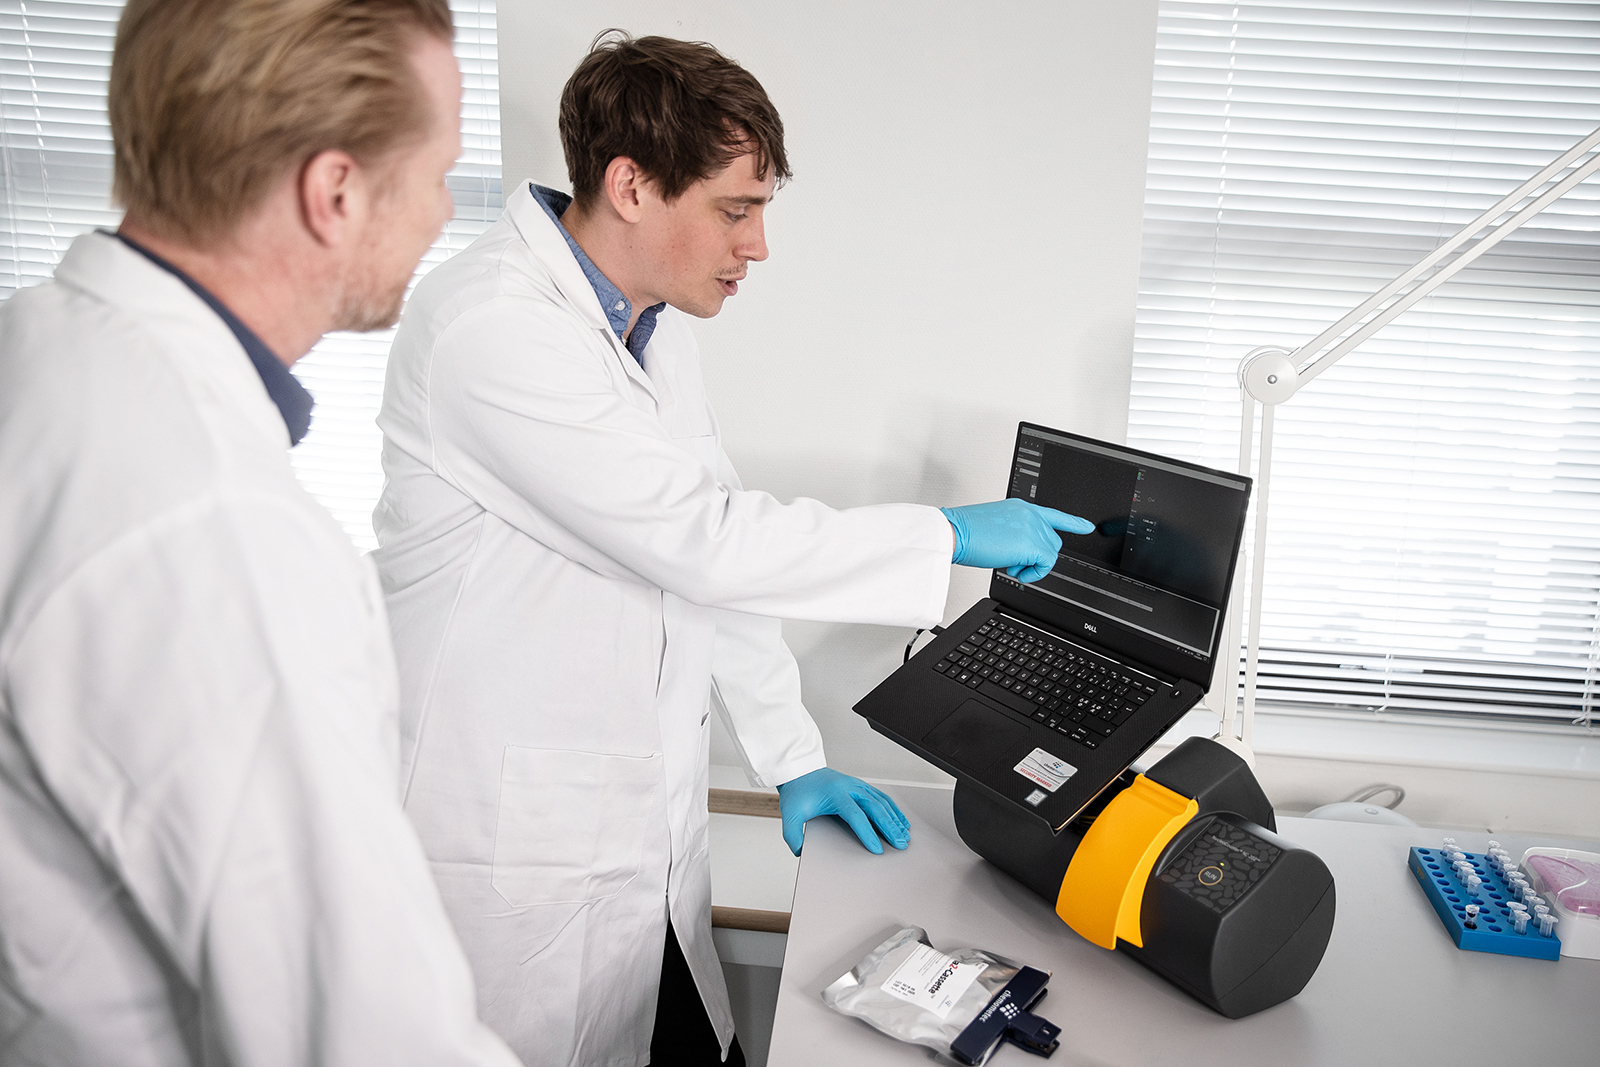 NucleoCounter® NC-202™ automated cell counter used by two scientists in the lab